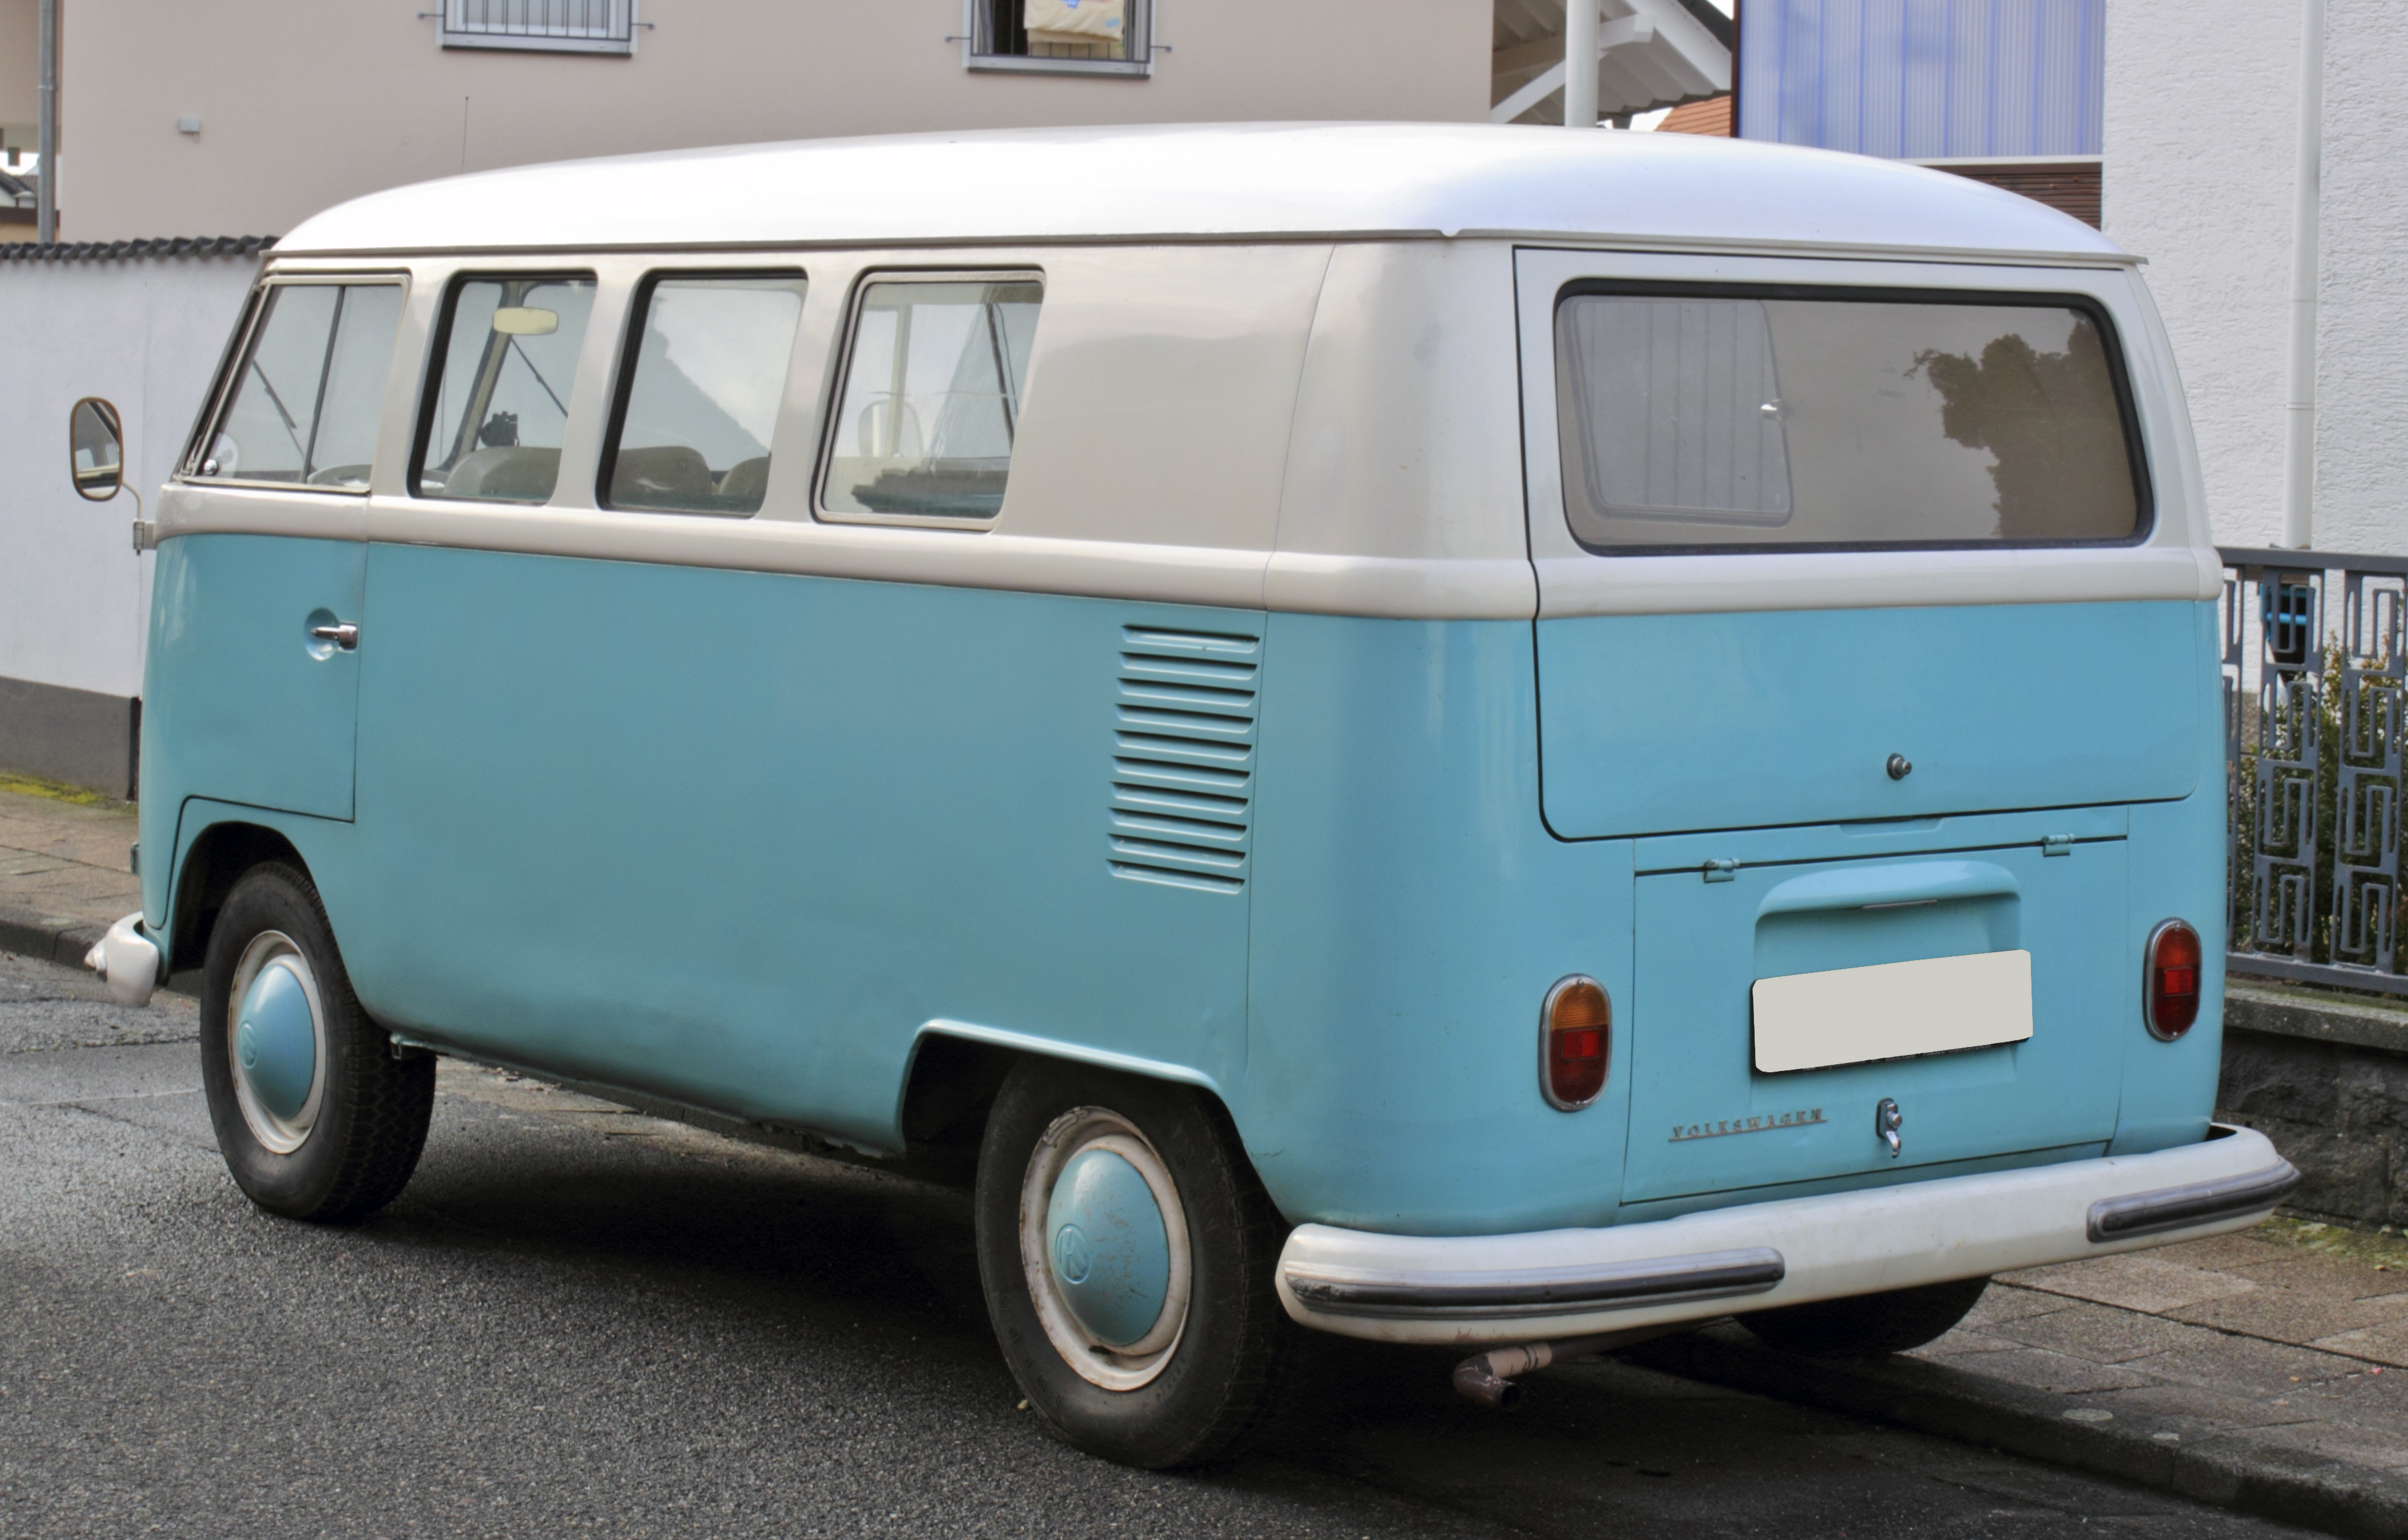 2018 Vw Bus Release Date >> Vw T1 Wikipedia | Autos Post